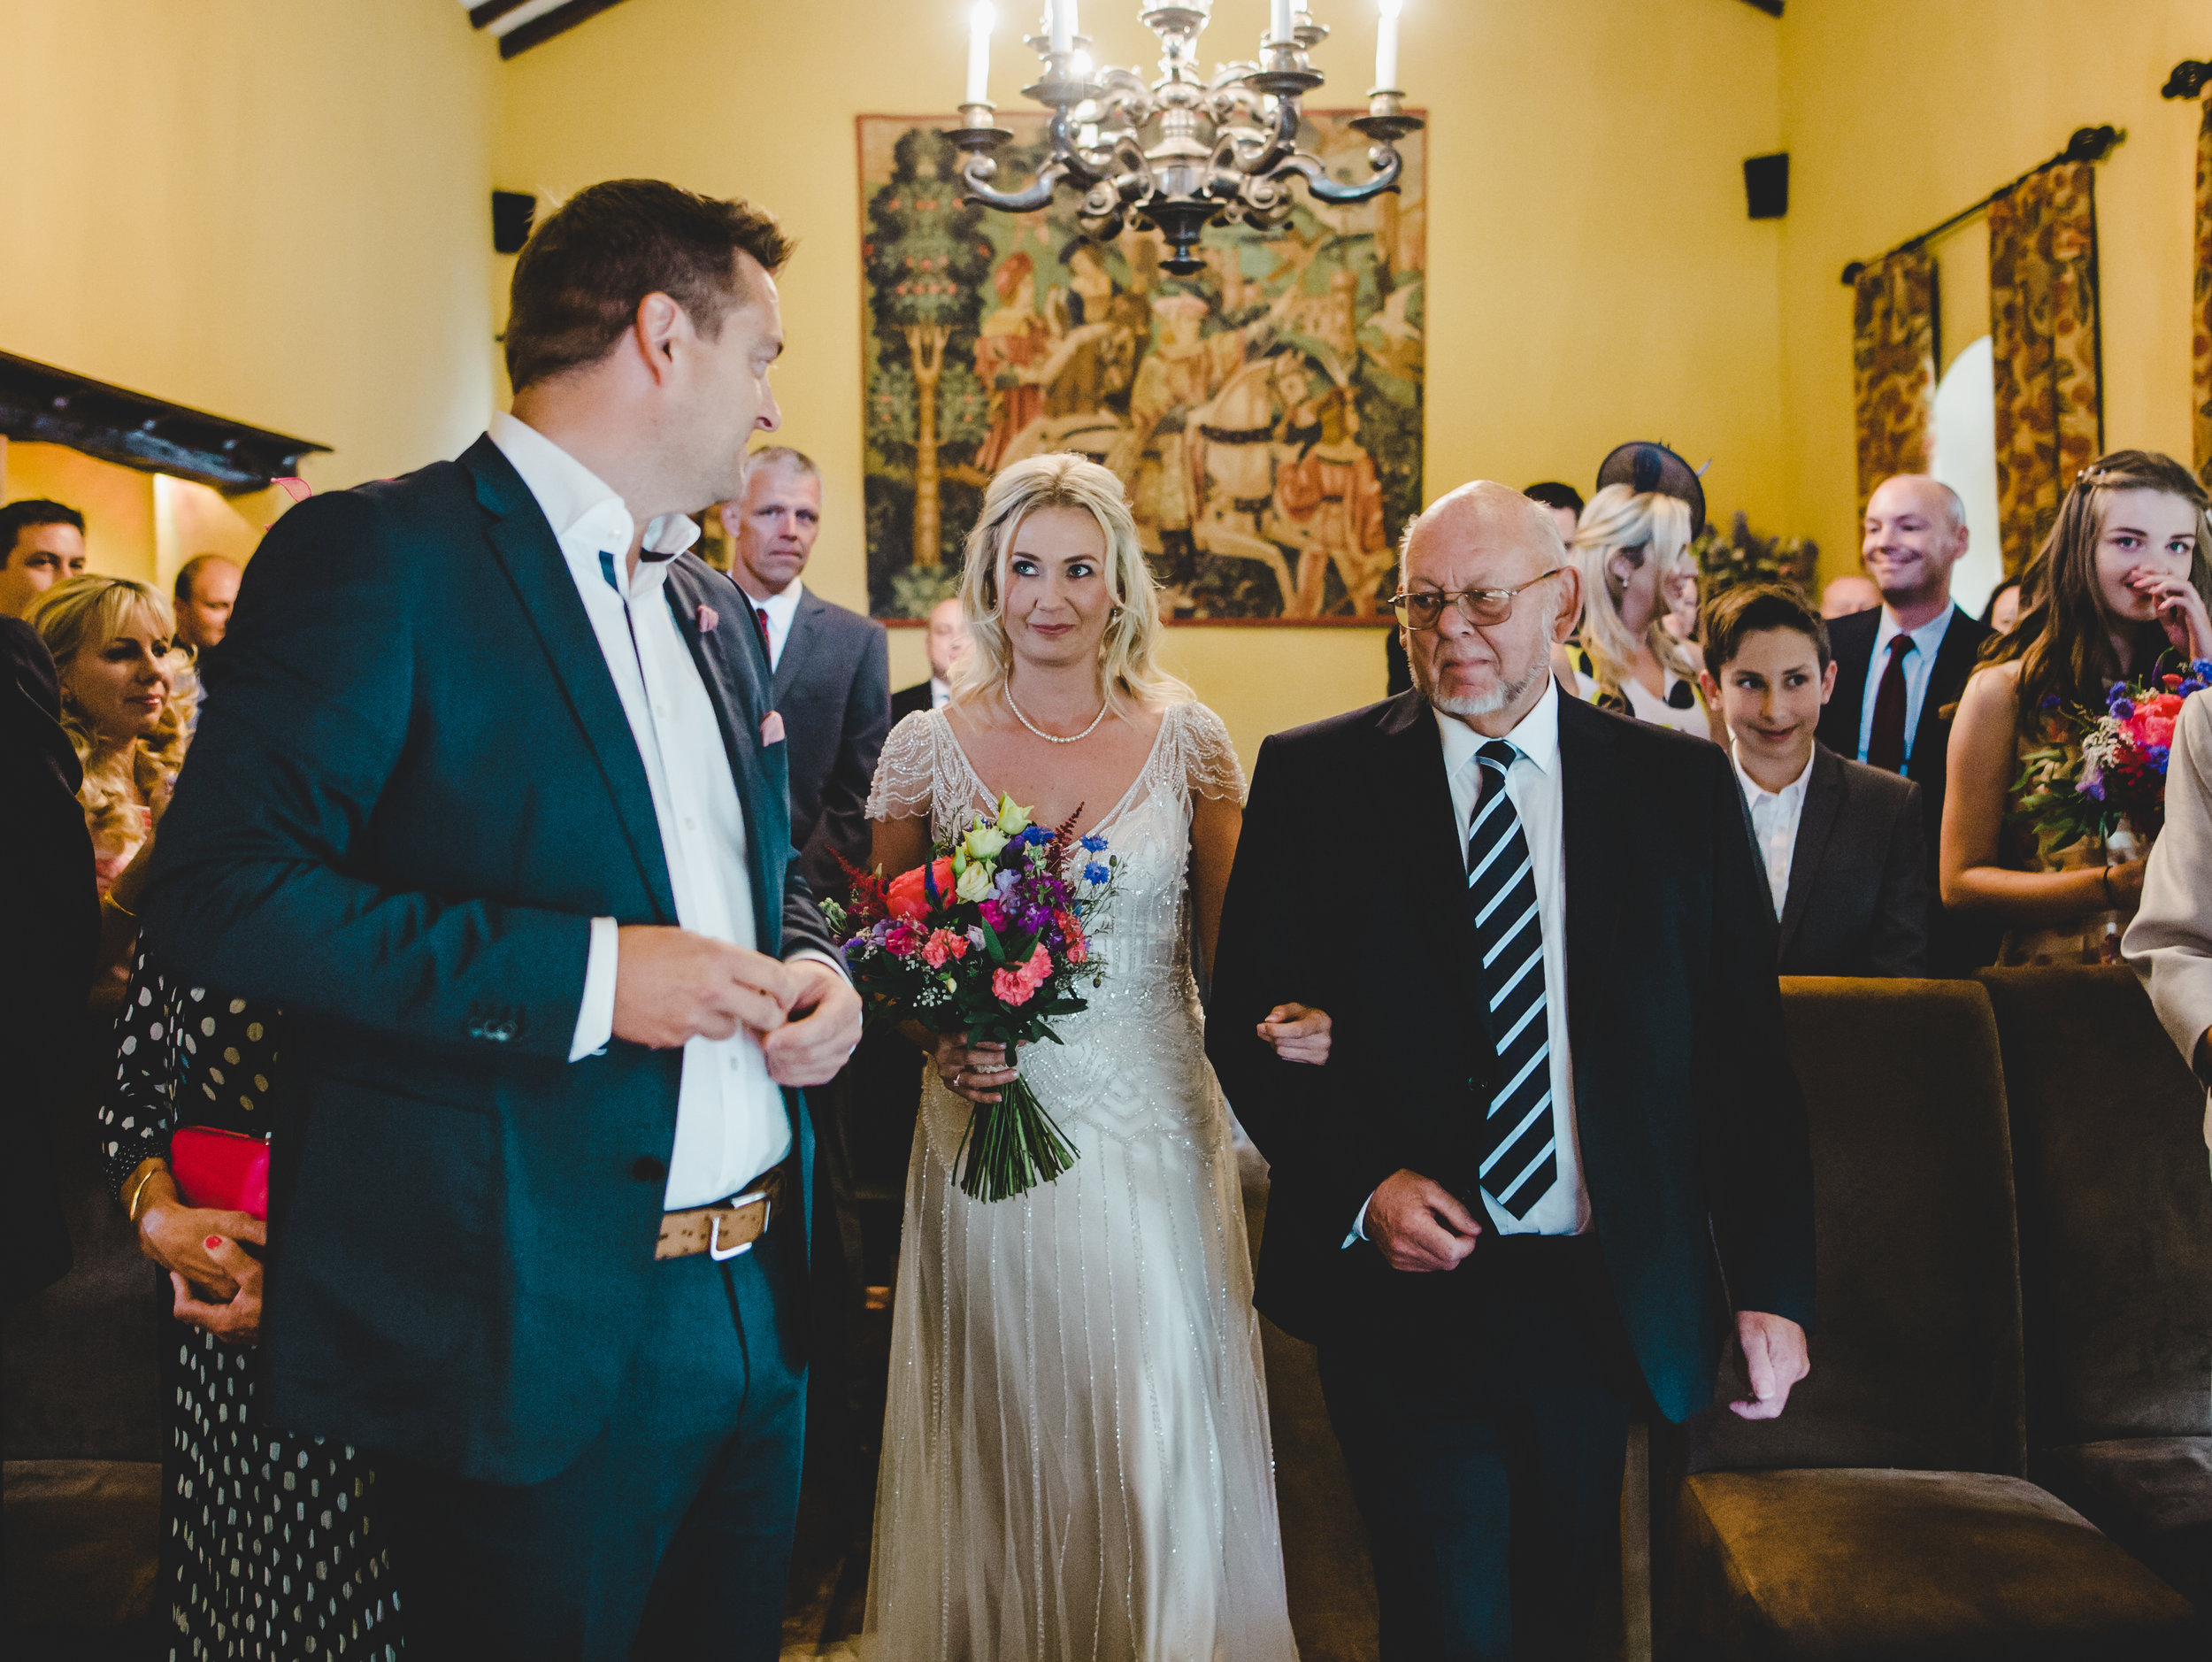 wedding ceremony at Hipping Hall hotel in the Lakes